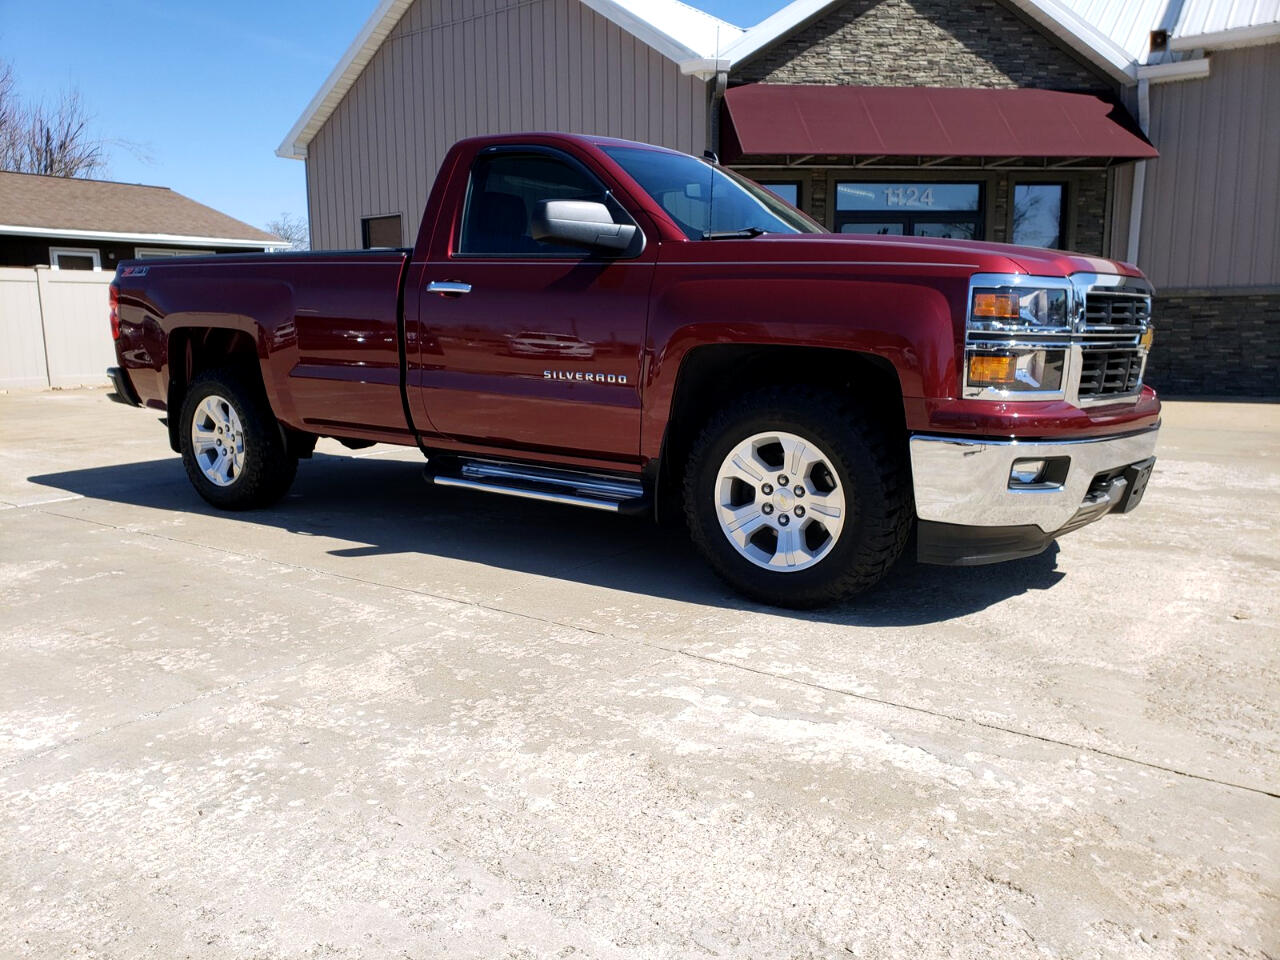 2014 Chevrolet Silverado 1500 LT Regular Cab Long Bed 4WD